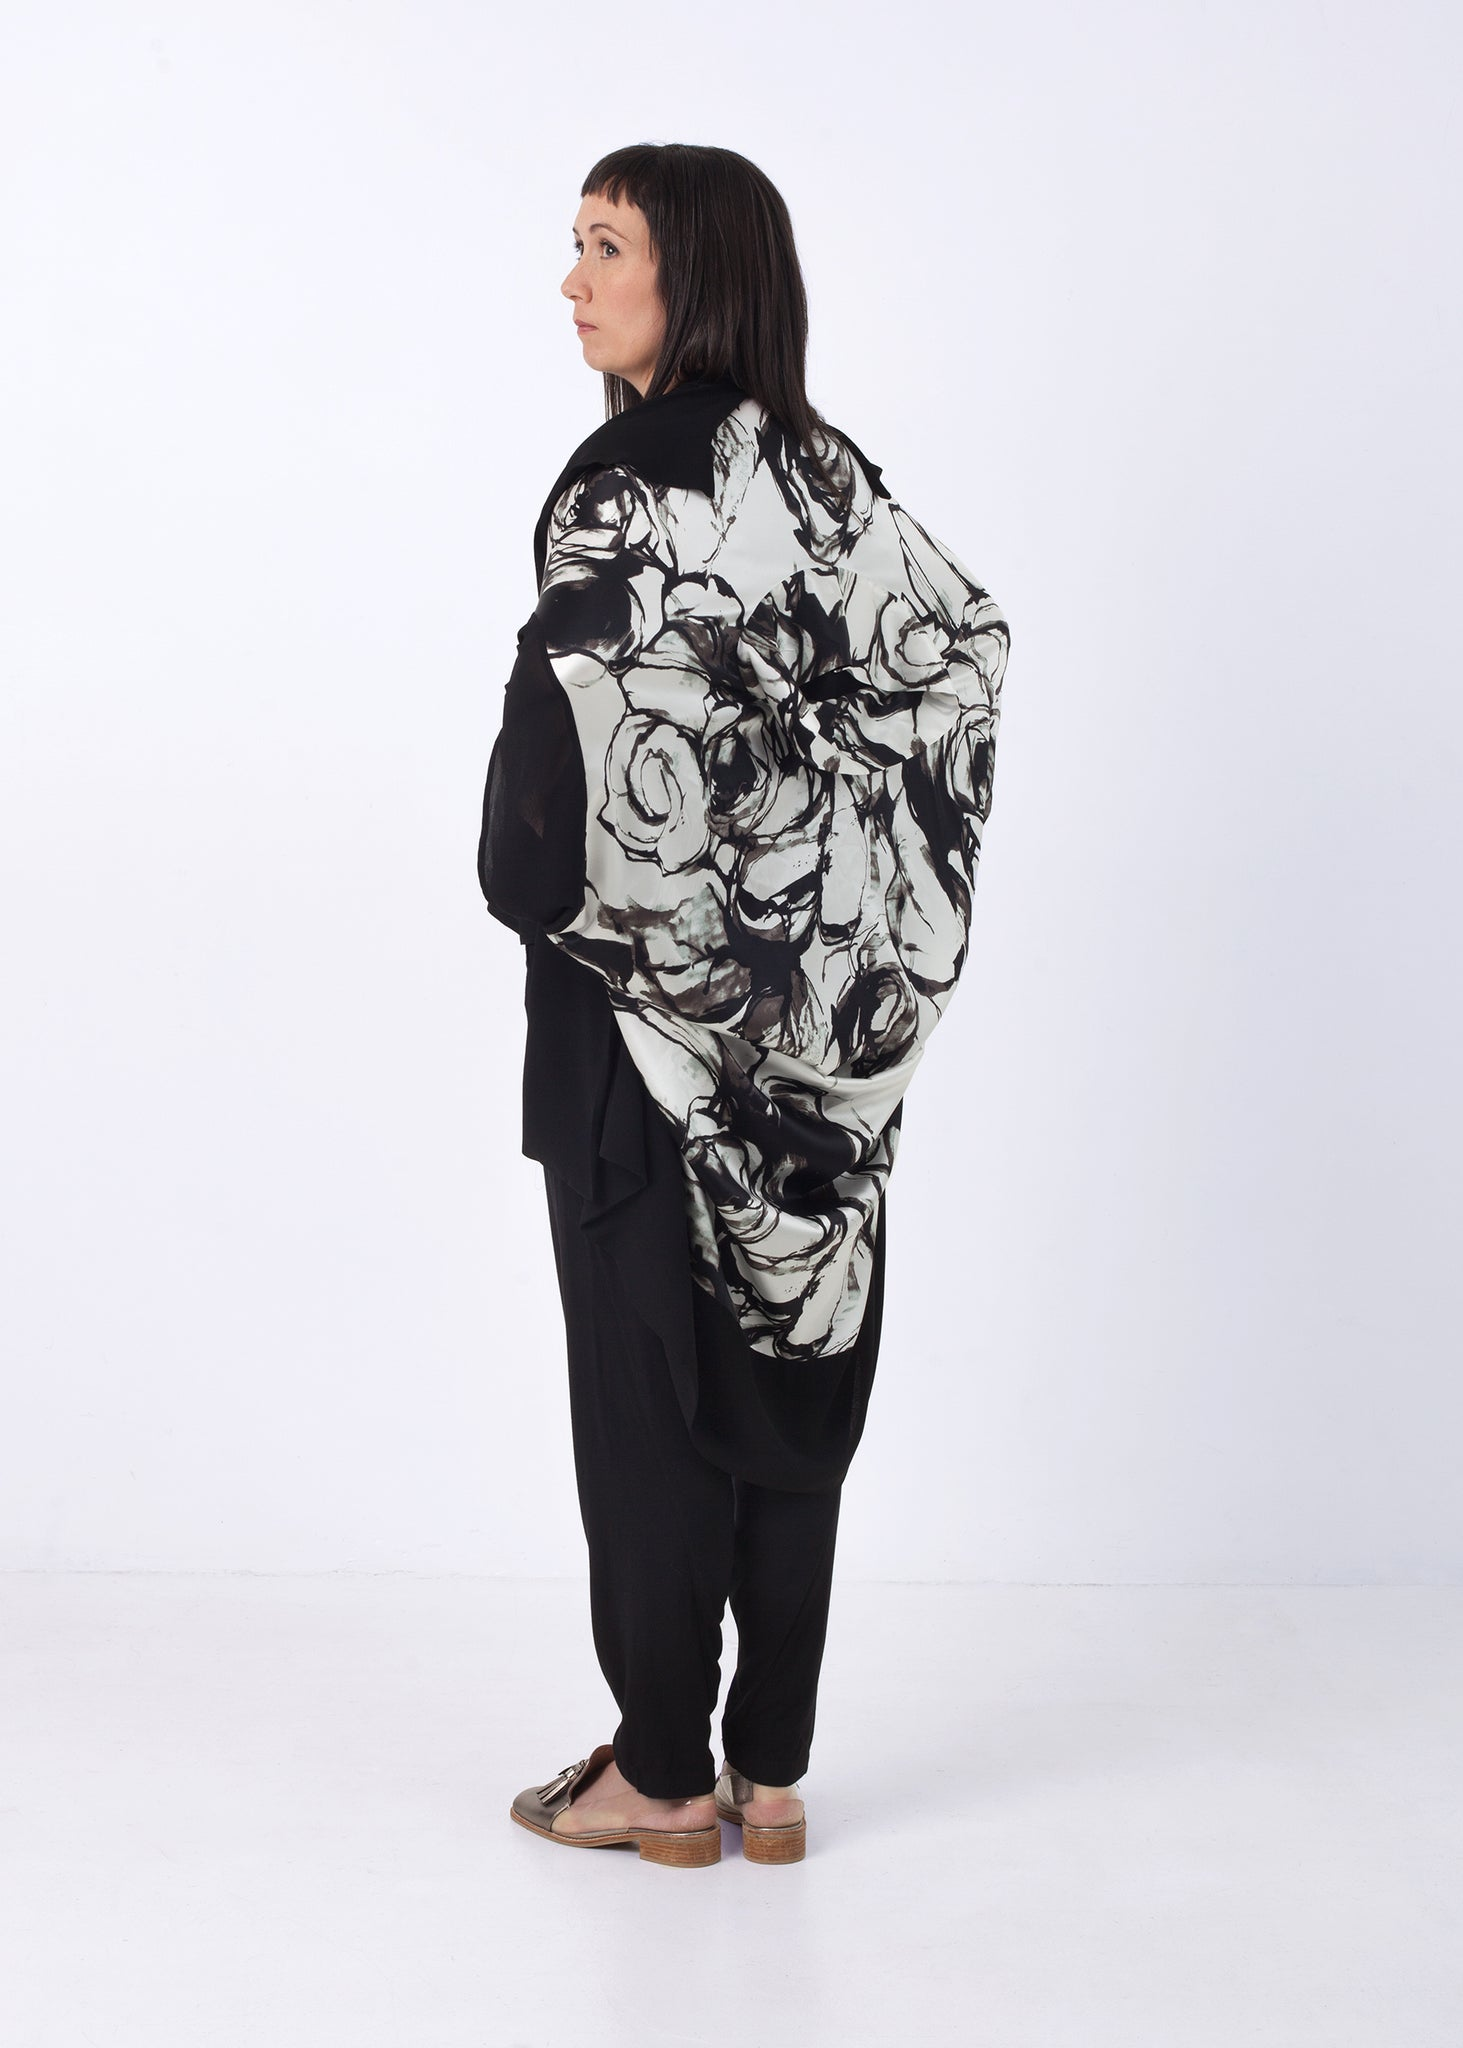 Fraser Crowe Funnel Neck Oversize Top, ethical fashion, sustainable fashion, designer clothes, plus size clothing, textile print clothing, luxury online fashion